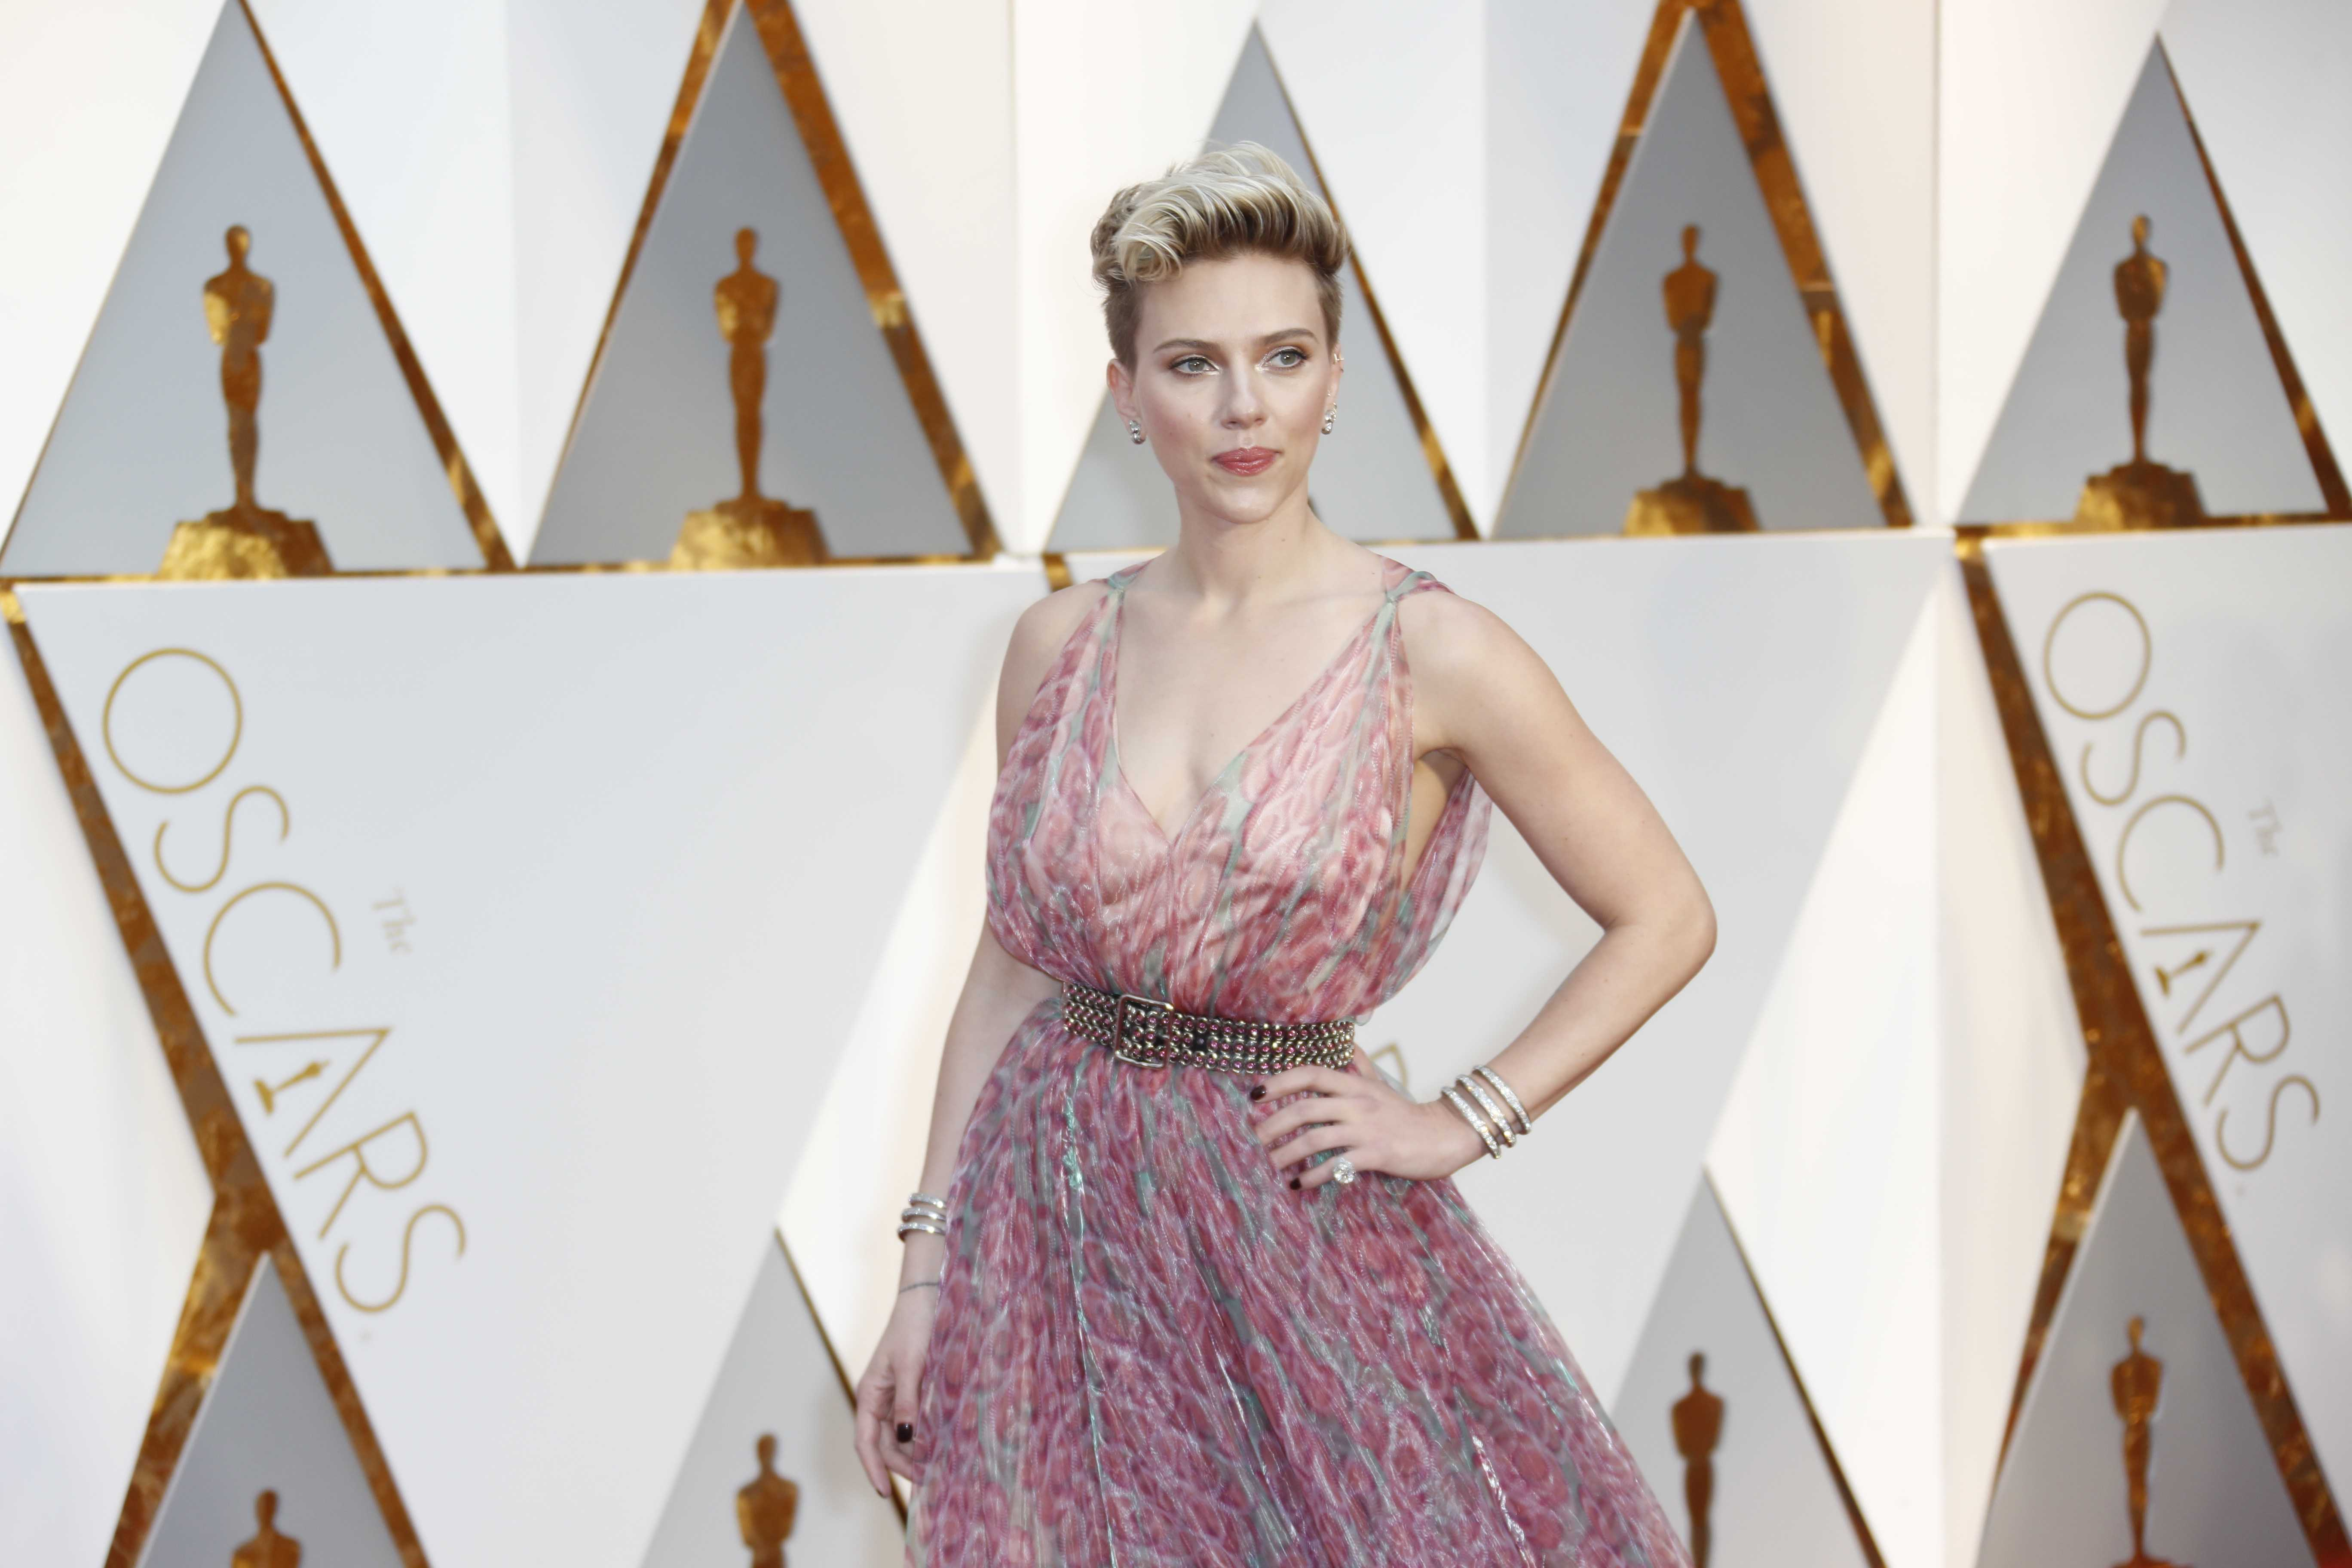 Scarlett Johansson arrives at the 89th Academy Awards on Sunday, Feb. 26, 2017, at the Dolby Theatre at Hollywood & Highland Center in Hollywood. (Jay L. Clendenin/Los Angeles Times/TNS)